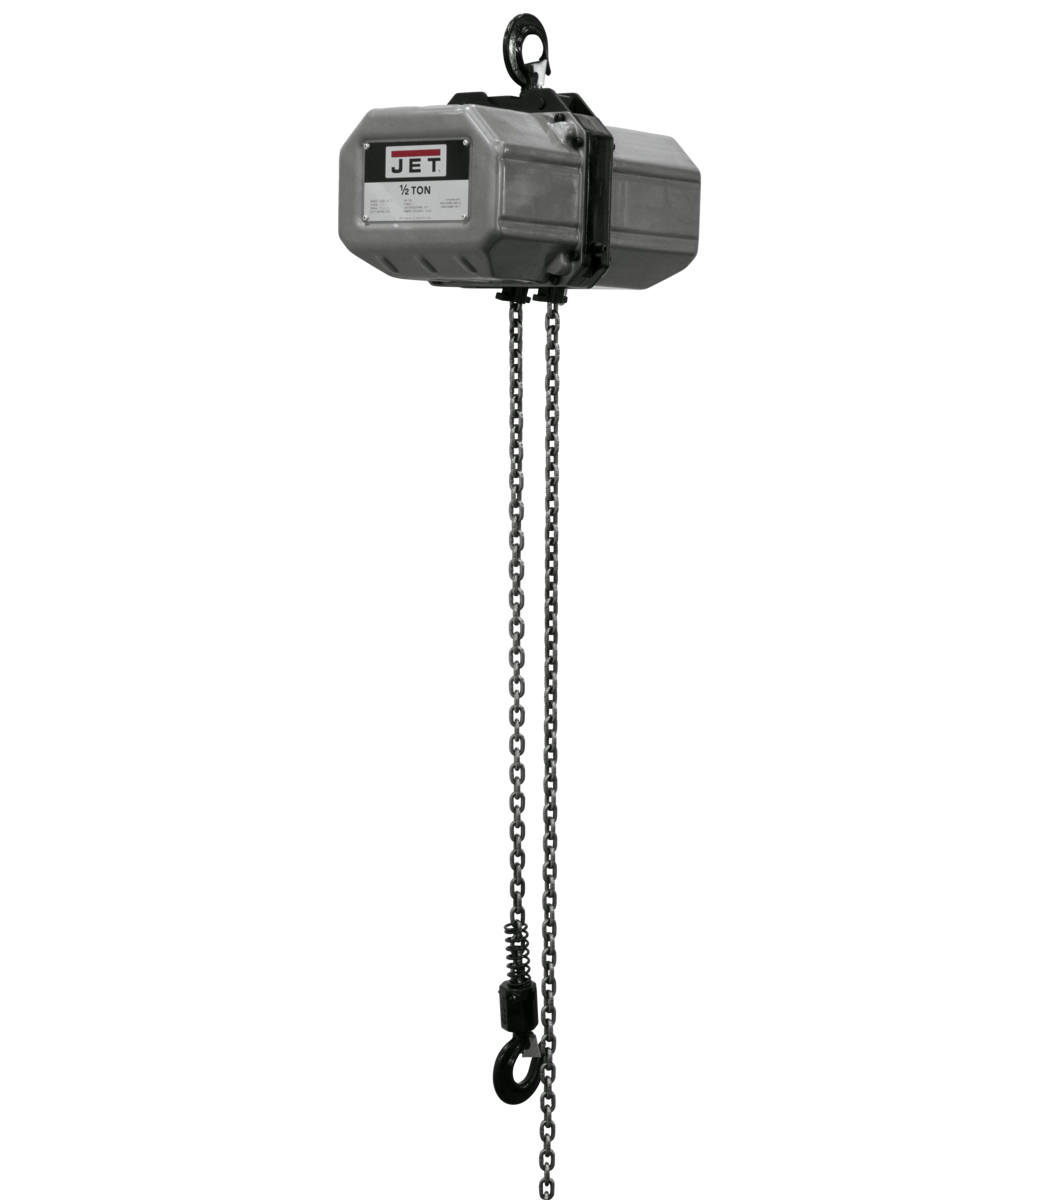 1/2SS-1C-10, 1/2-Ton Electric Chain Hoist 1-Phase 10' Lift